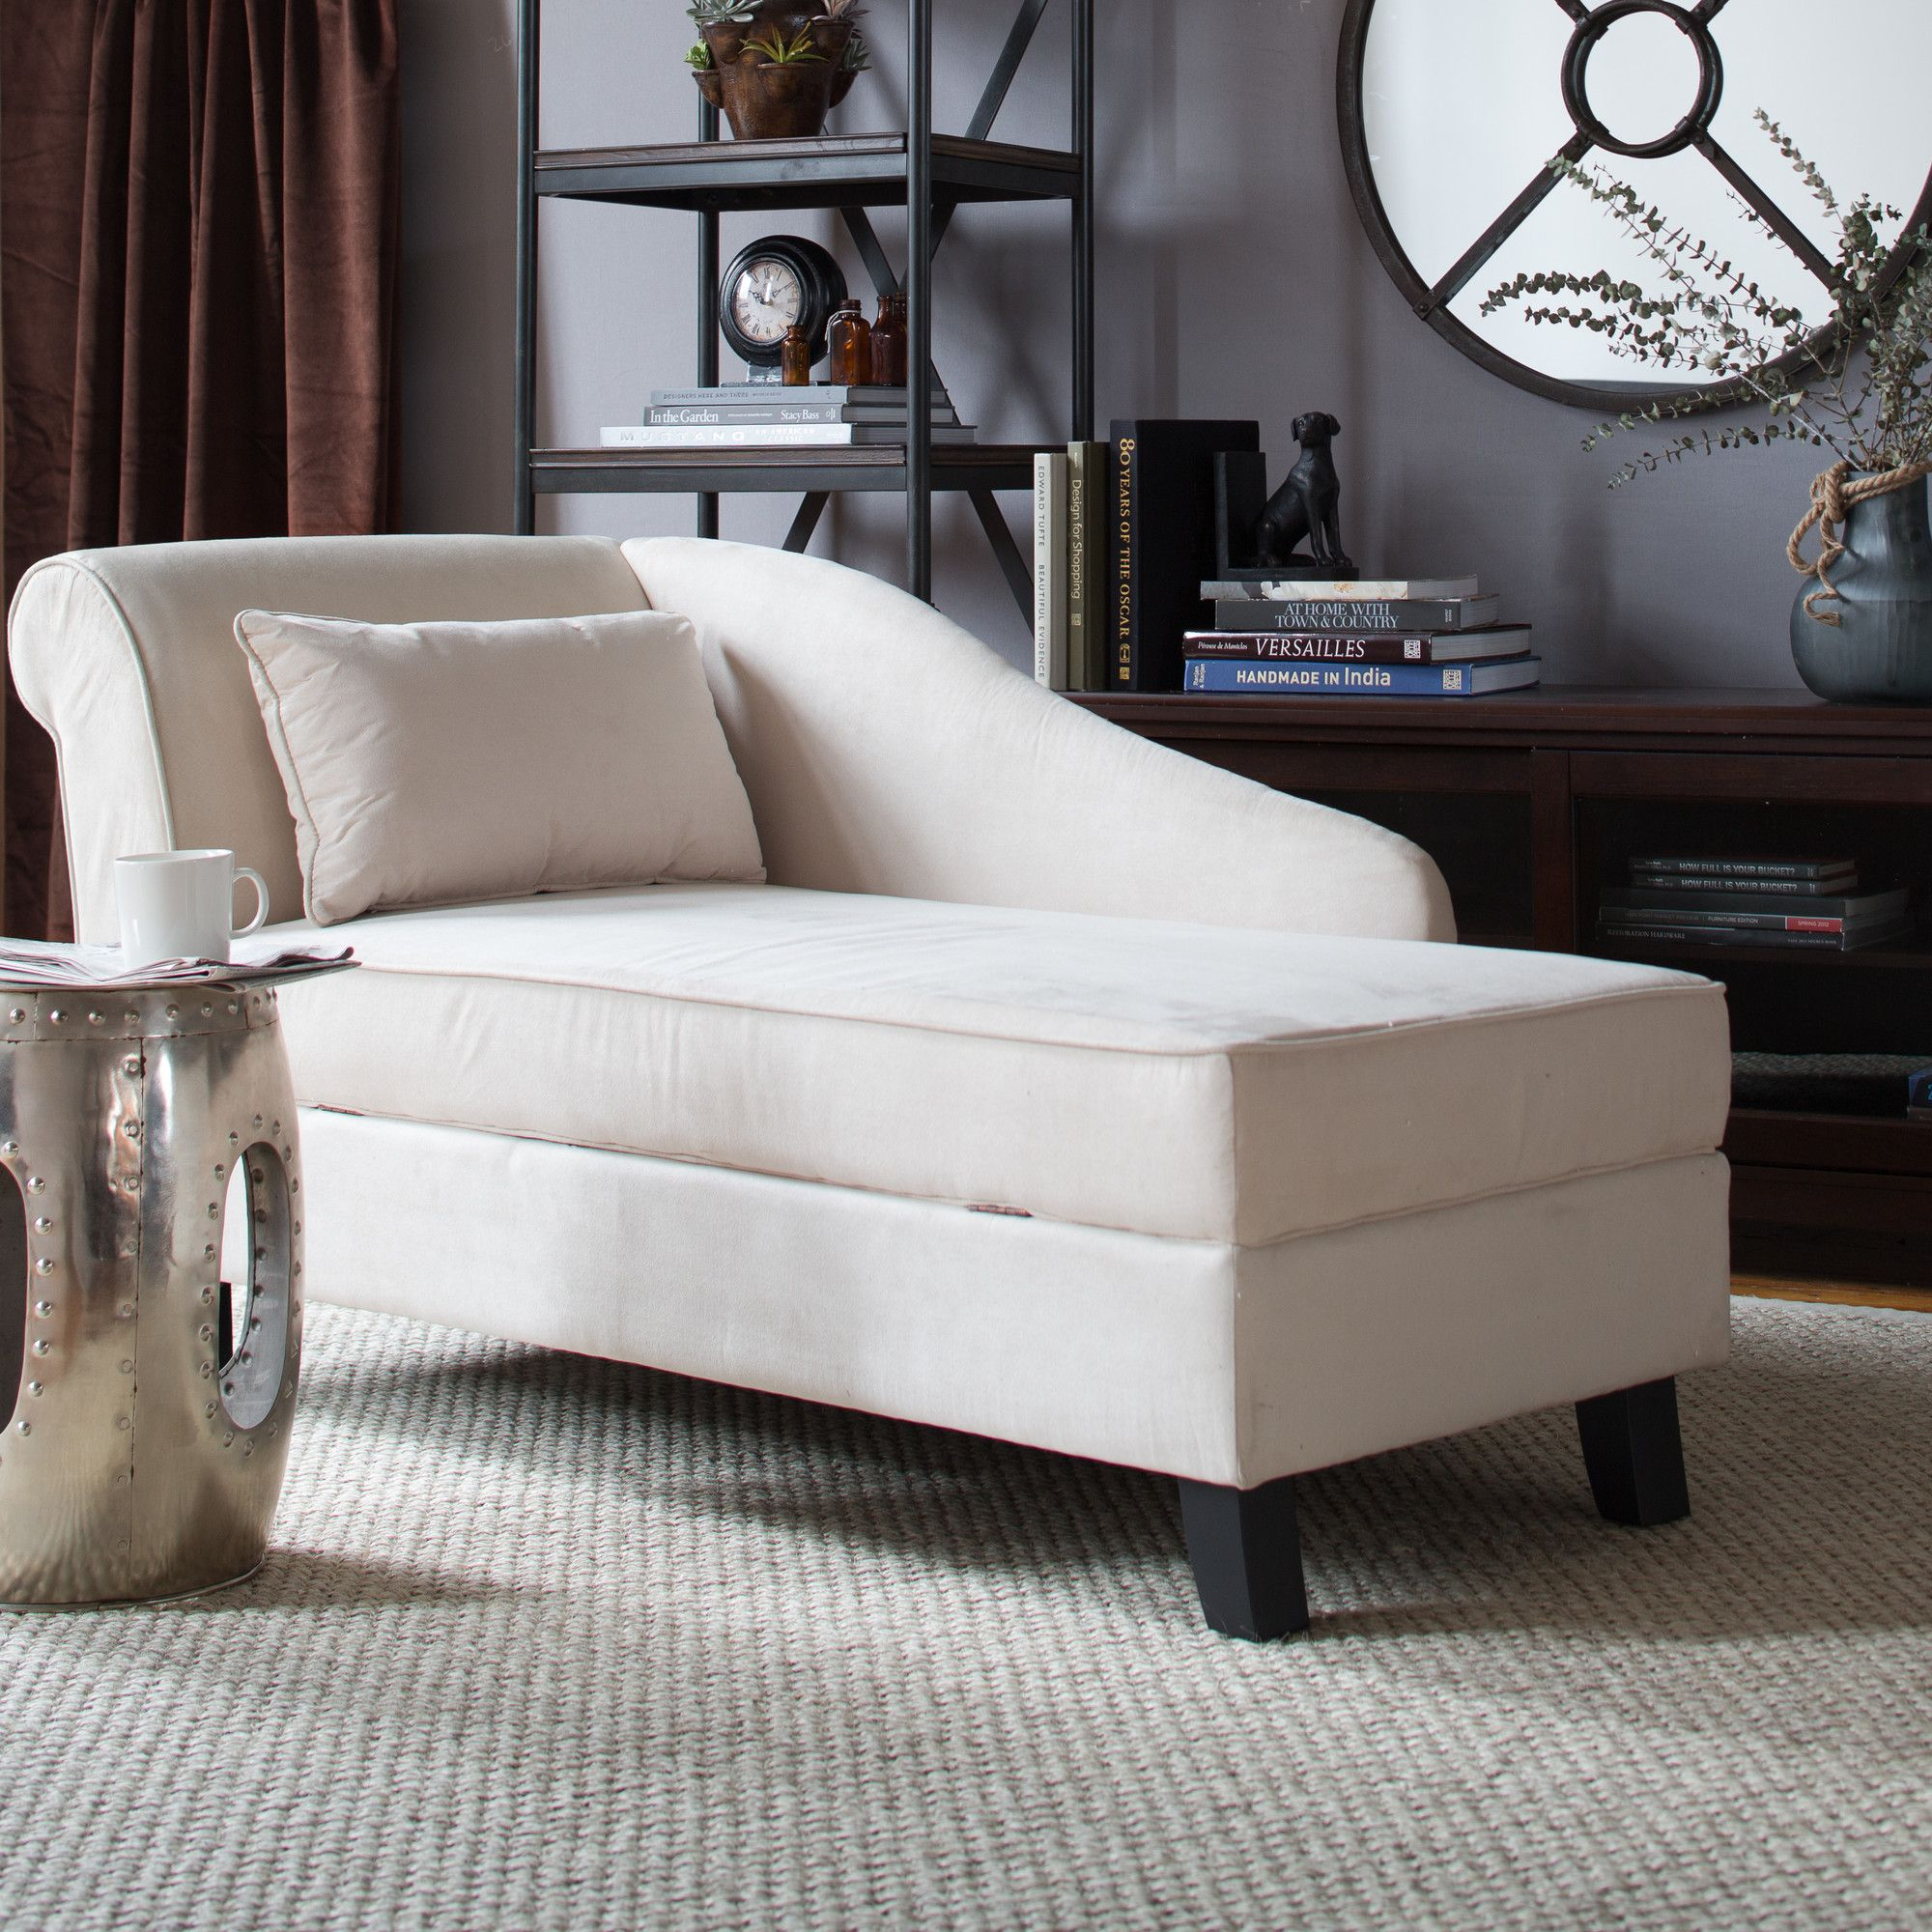 Modern Furniture and Decor for your Home and fice